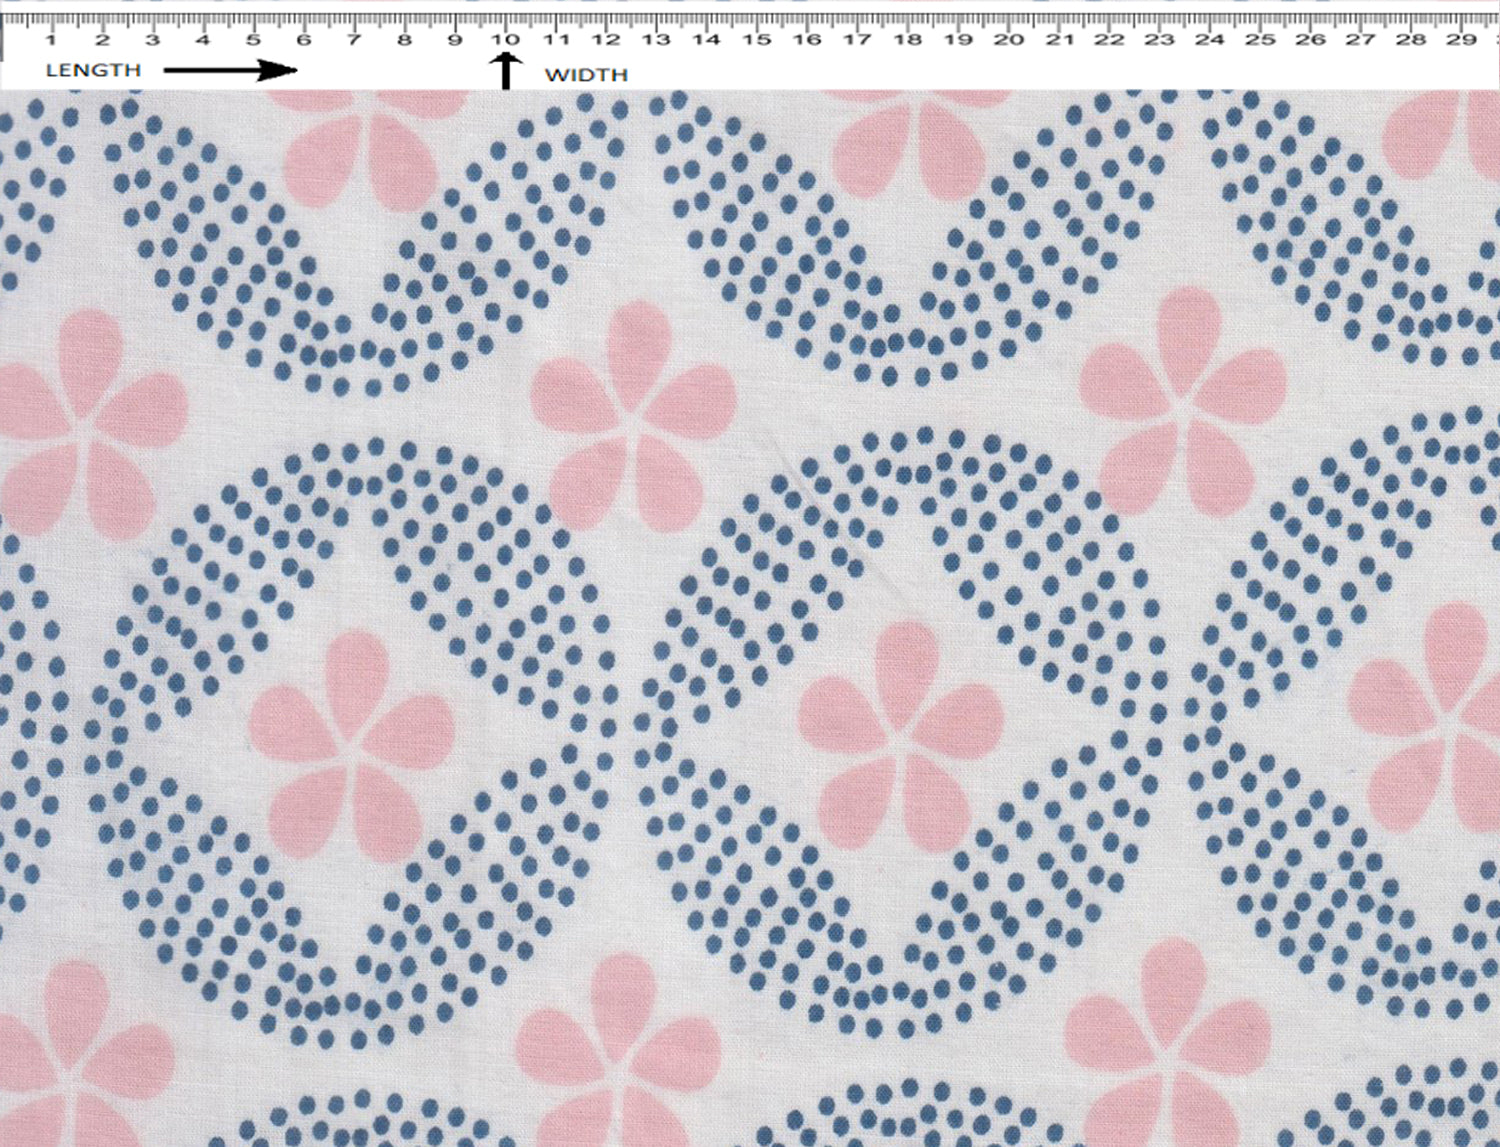 UNITY DOT FLOWER PRINT {WHITE-WOAD BLUE-ASH PINK}  (Cambric)